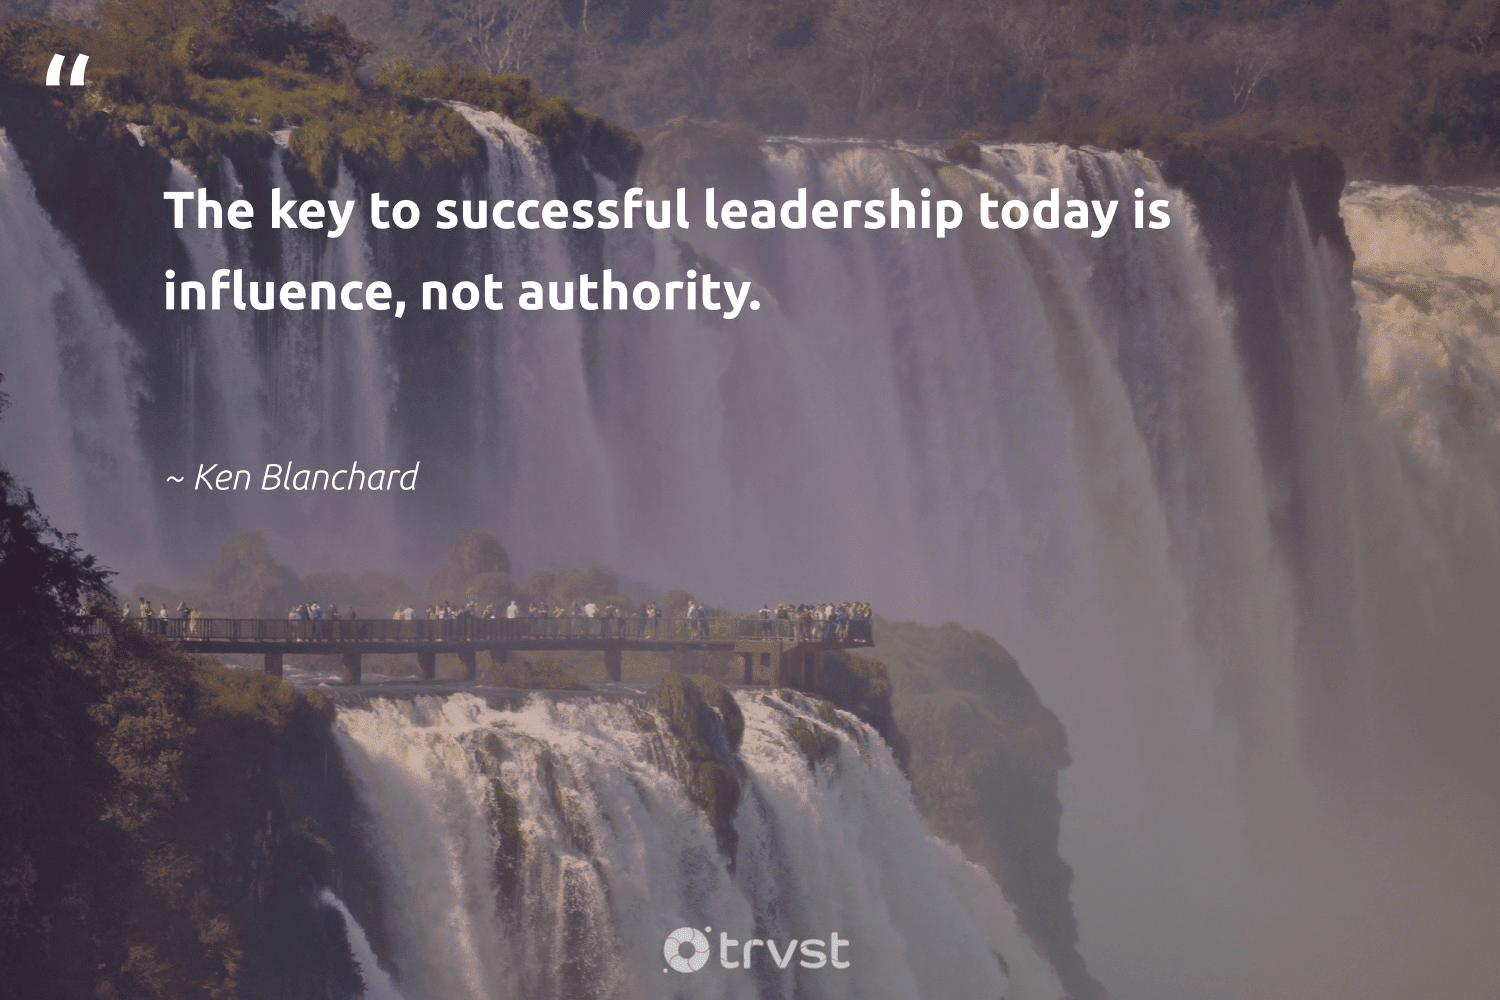 """The key to successful leadership today is influence, not authority.""  - Ken Blanchard #trvst #quotes #leadership #influence #leadershipqualities #nevergiveup #softskills #bethechange #leadershipdevelopment #futureofwork #begreat #takeaction"